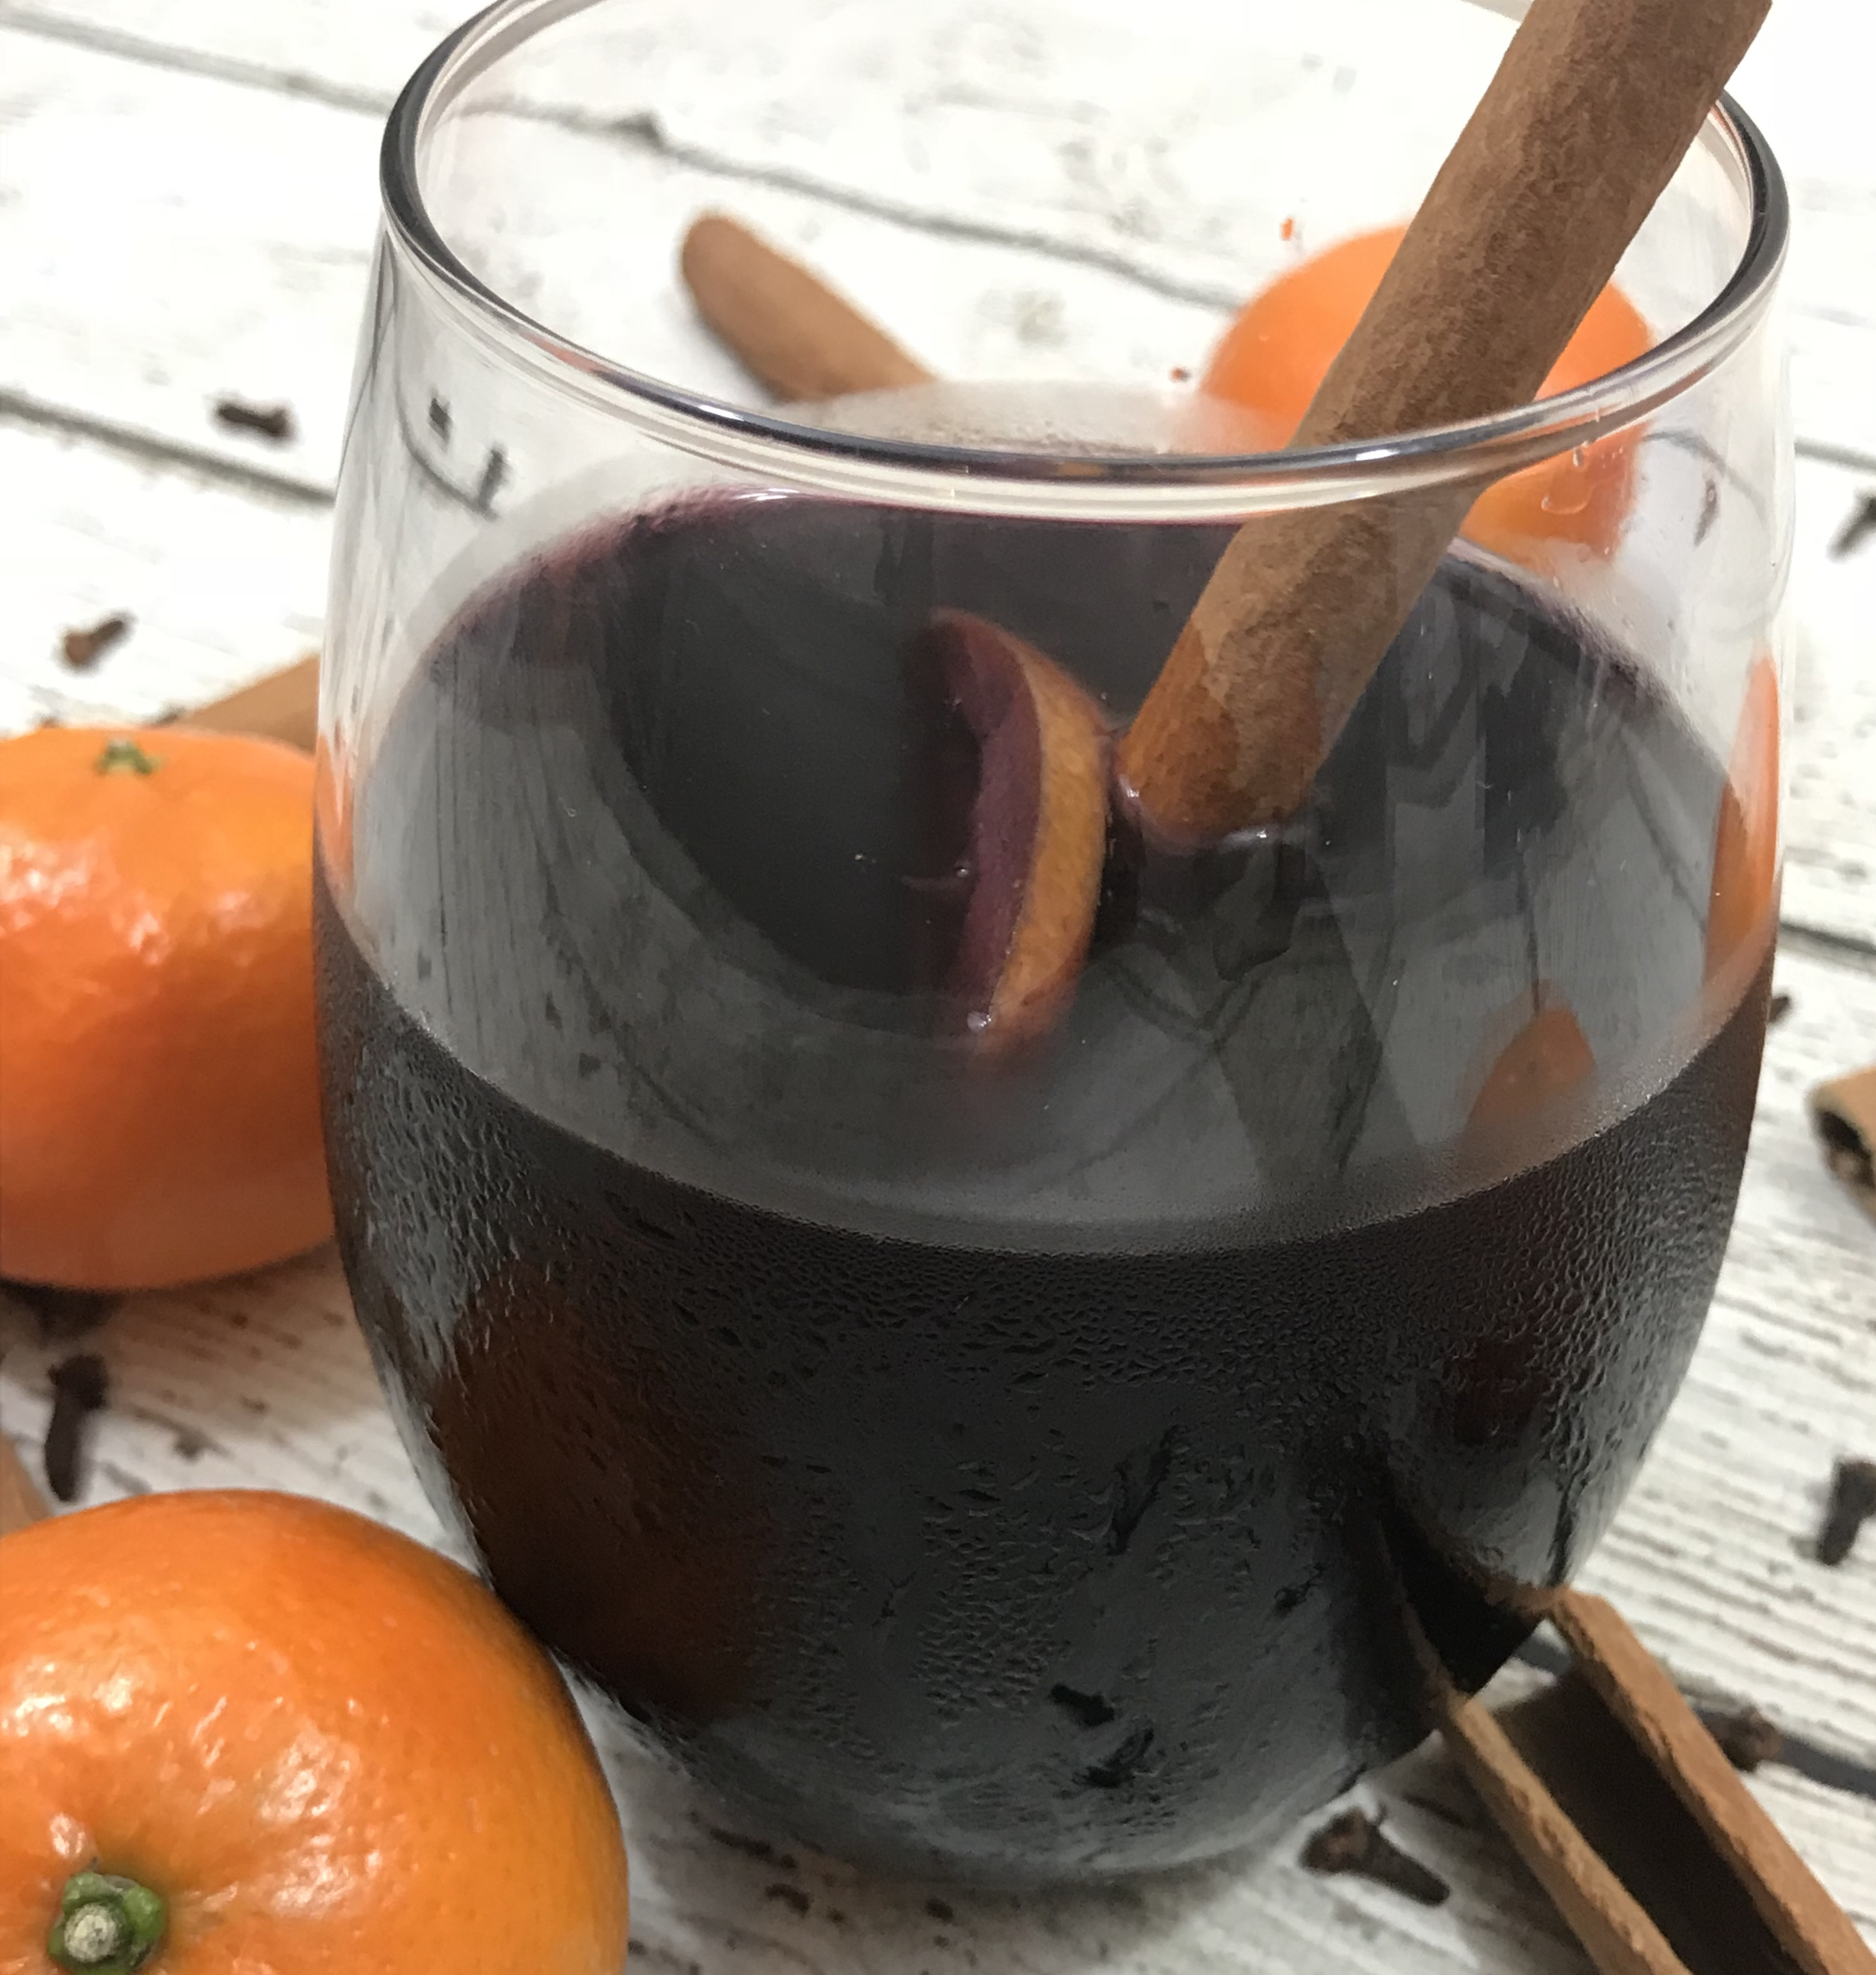 gluhwein german spiced wine recipe